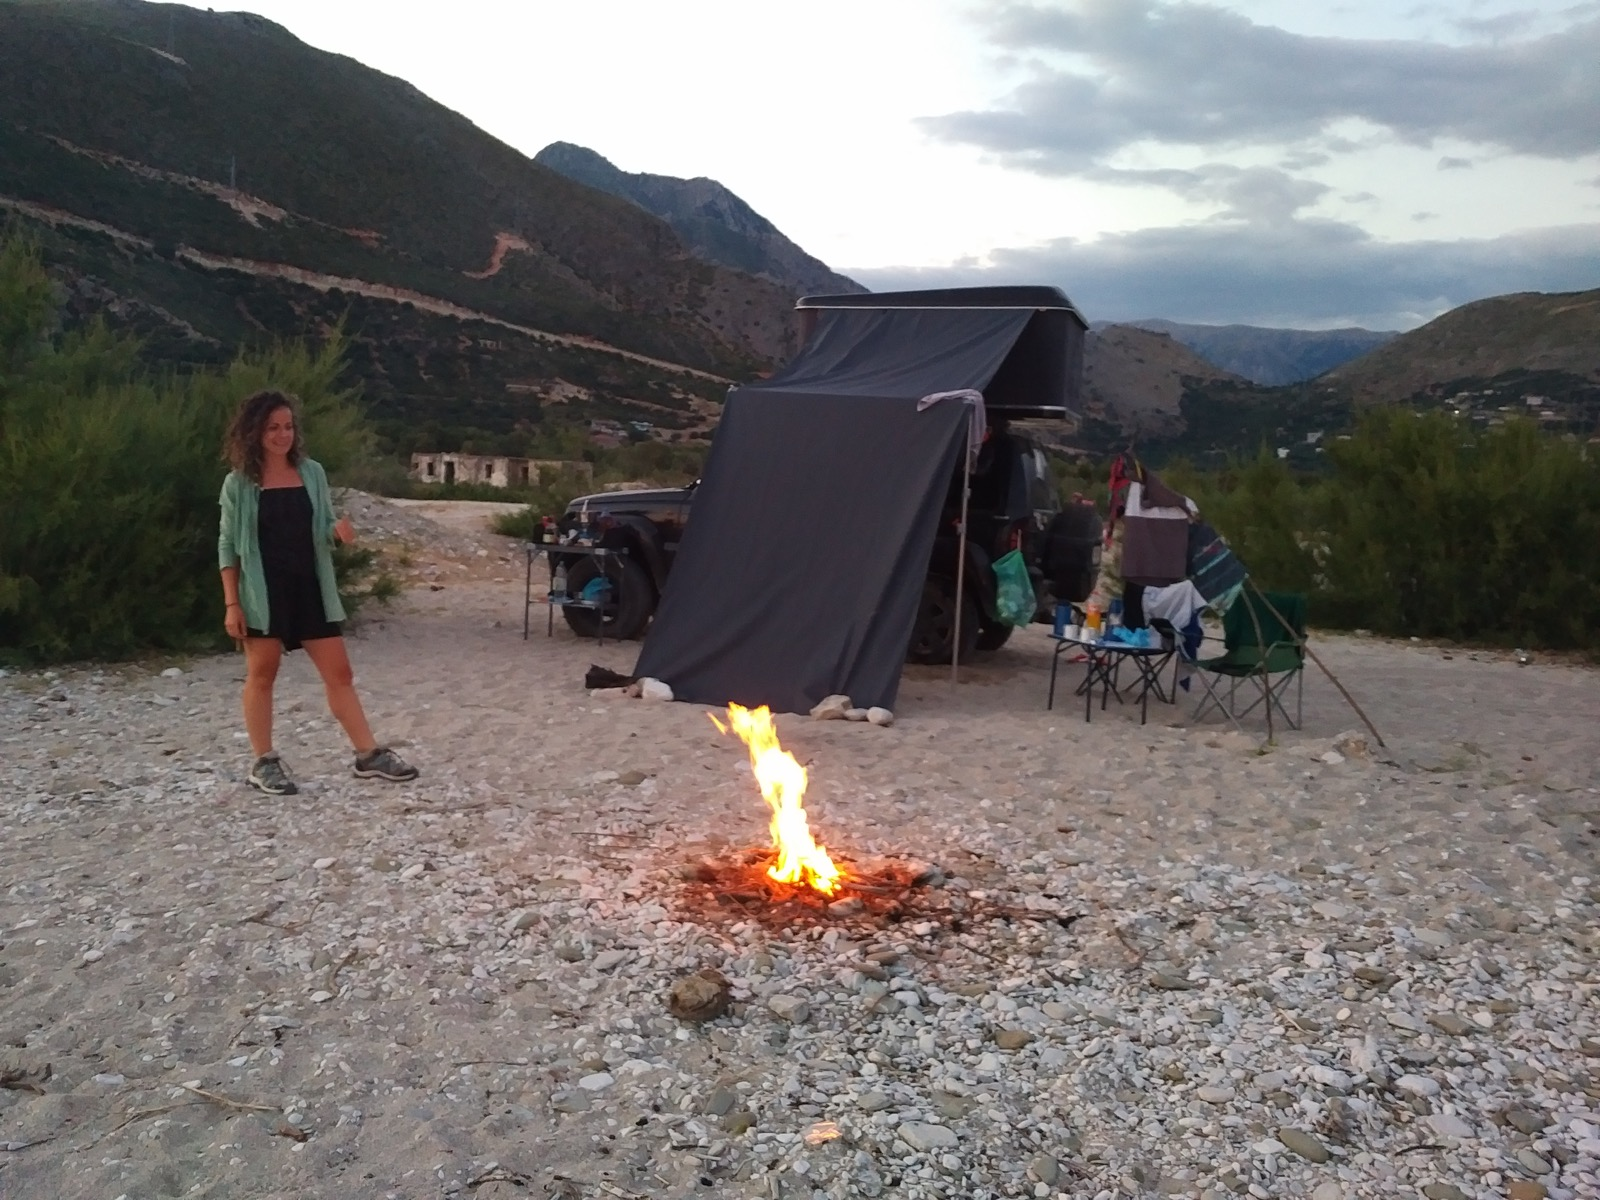 Camplife deluxe am Strand von Borsh inklusive Lagerfeuer